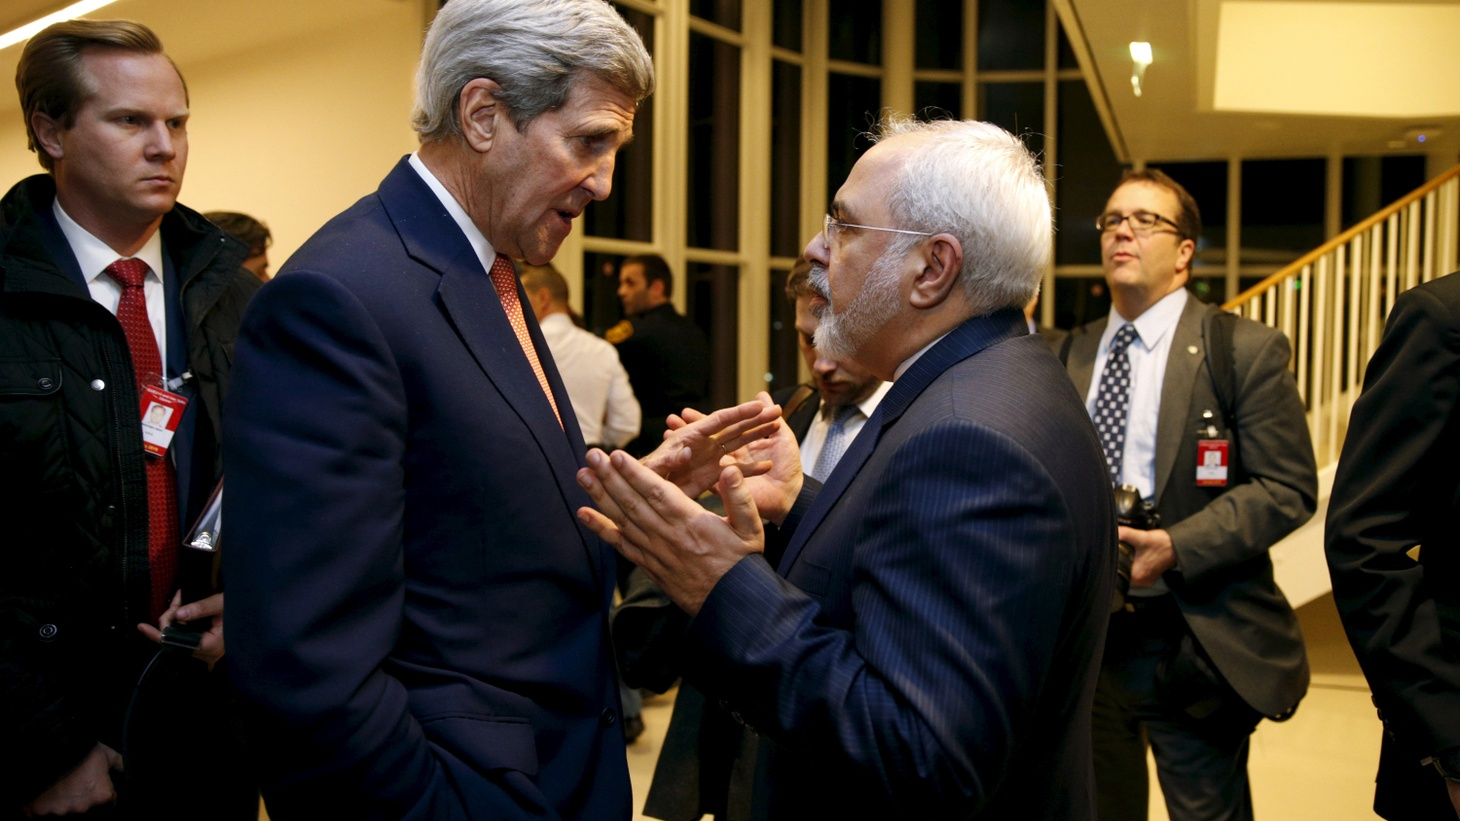 """Implementation of the nuclear deal and prisoner swaps highlighted a weekend of diplomacy between the US and Iran after 35 years of outspoken hostility. How much longer can the """"good feelings"""" last?"""